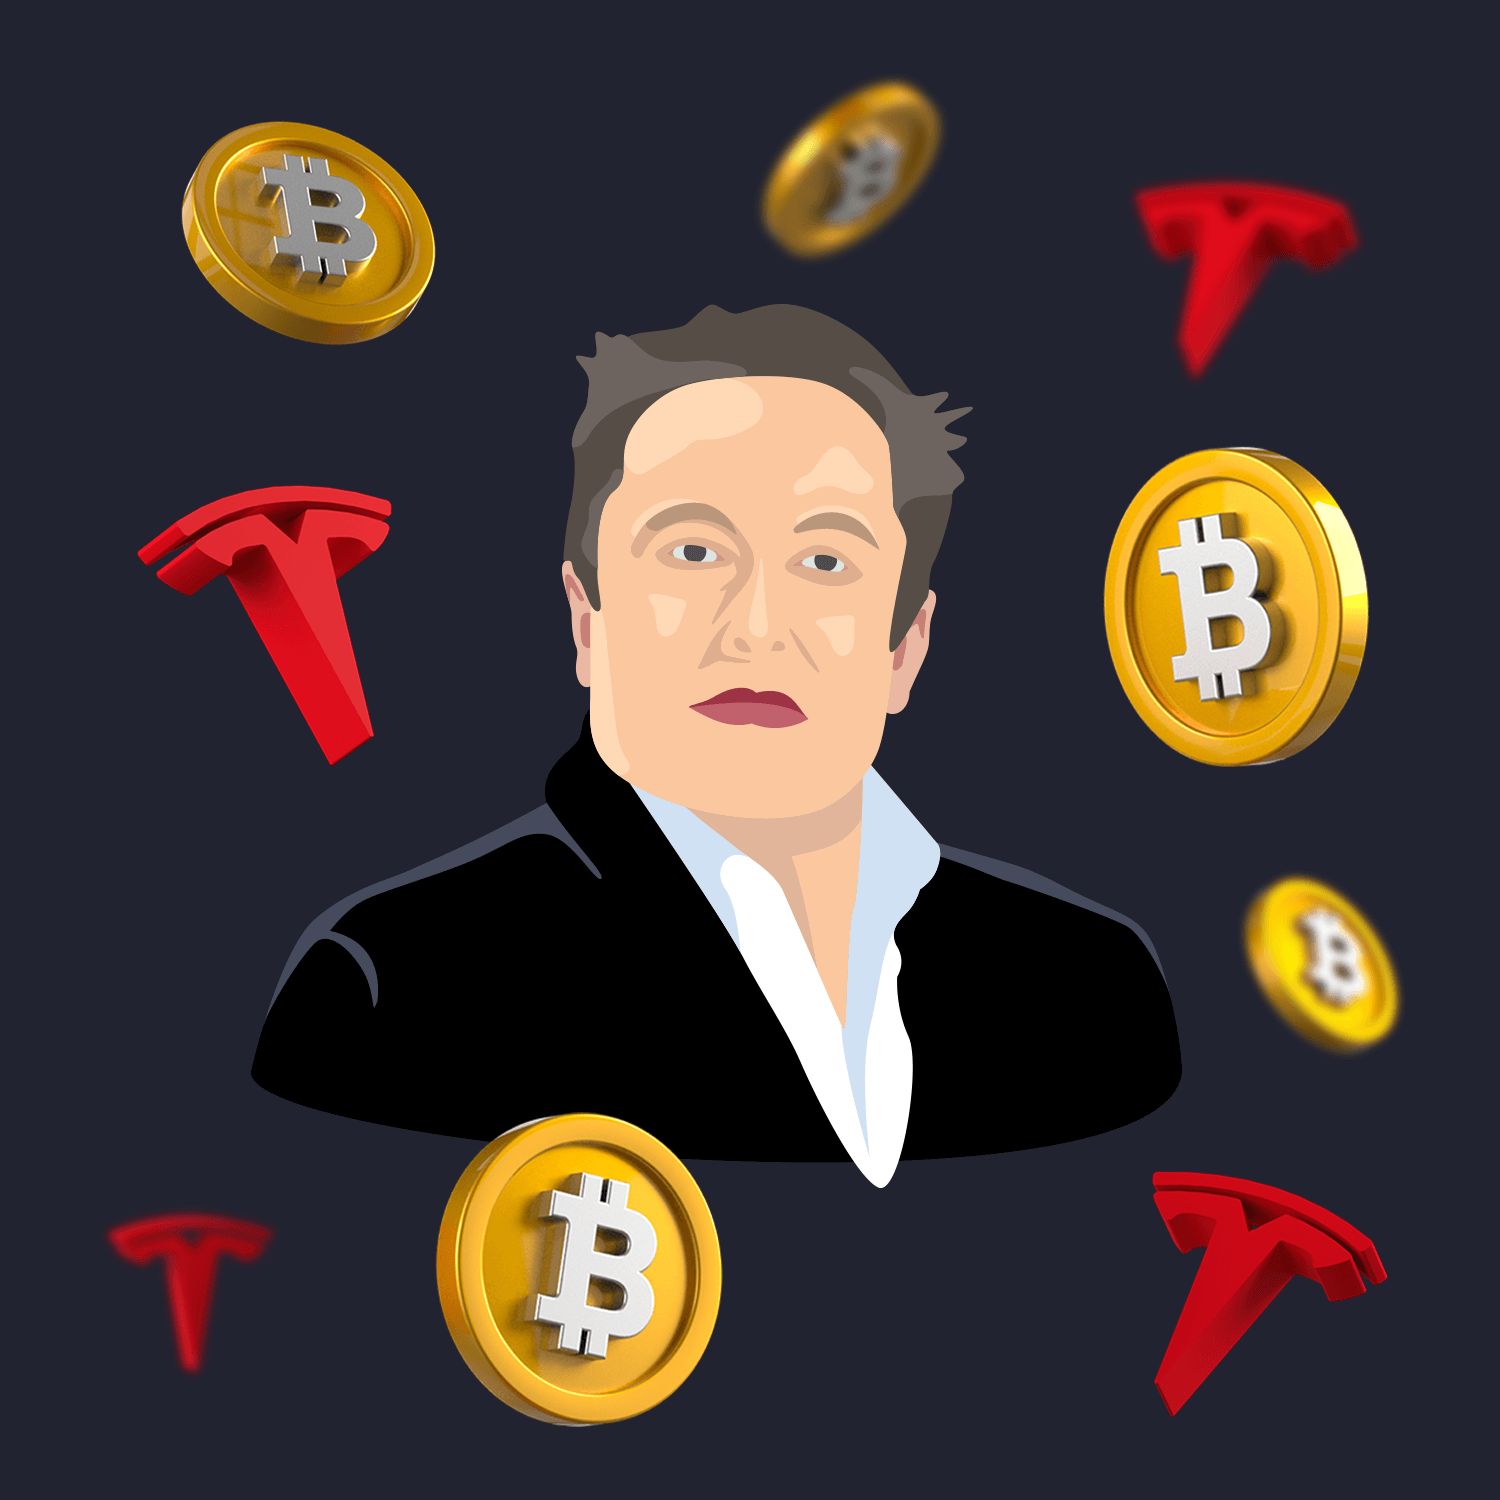 Elon Musk's History in Crypto: the Good, the Bad and the Doge